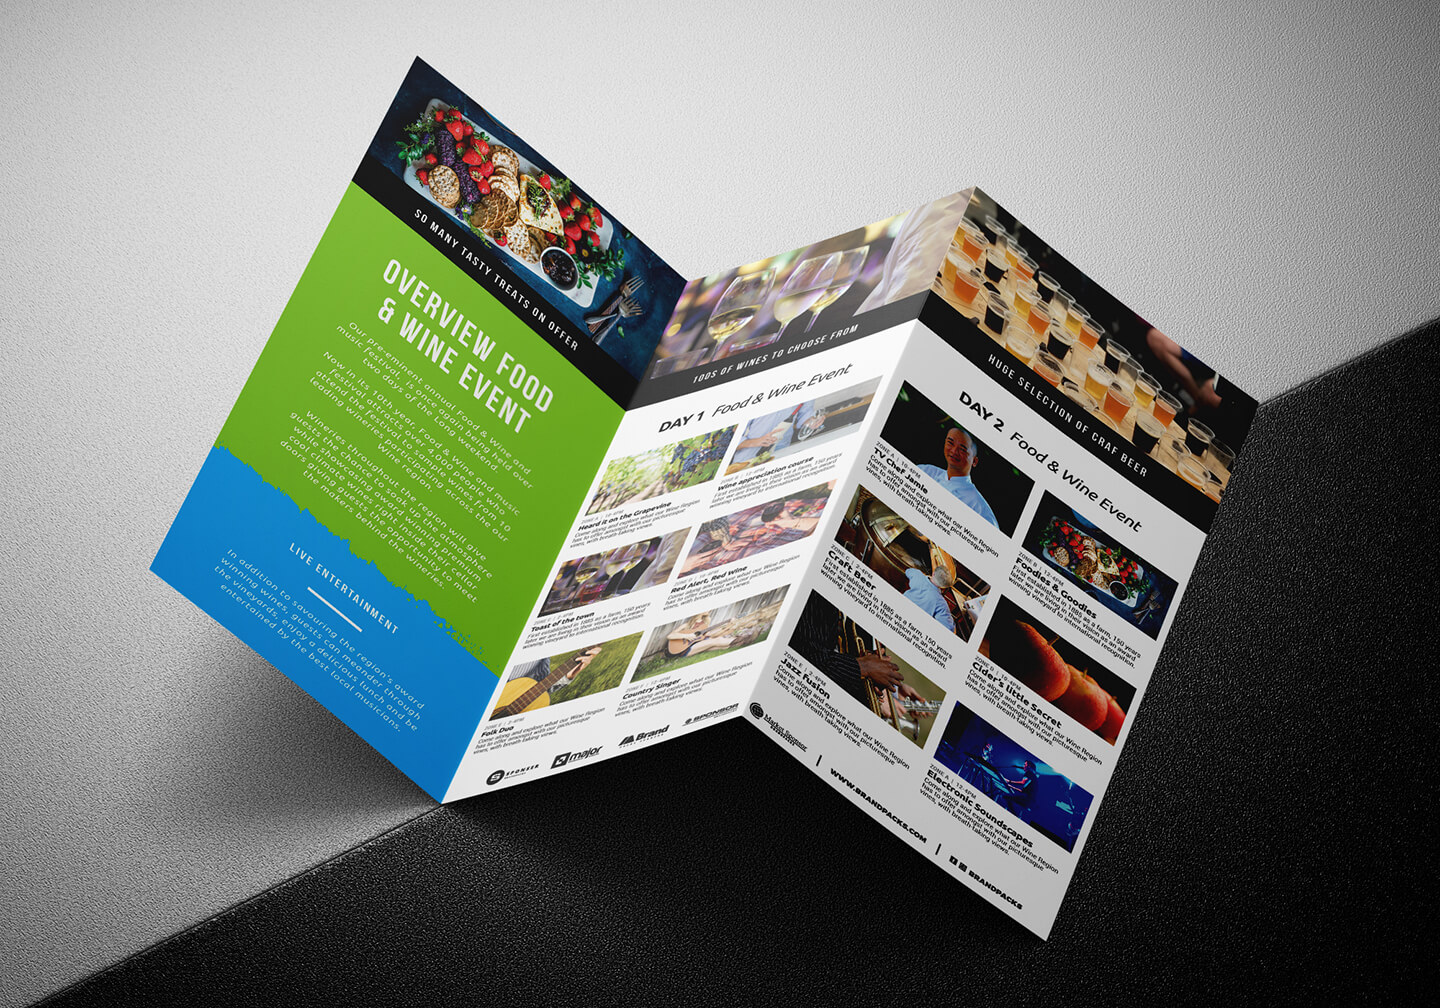 Free Tri Fold Brochure Template For Events & Festivals - Psd Regarding Tri Fold Brochure Template Illustrator